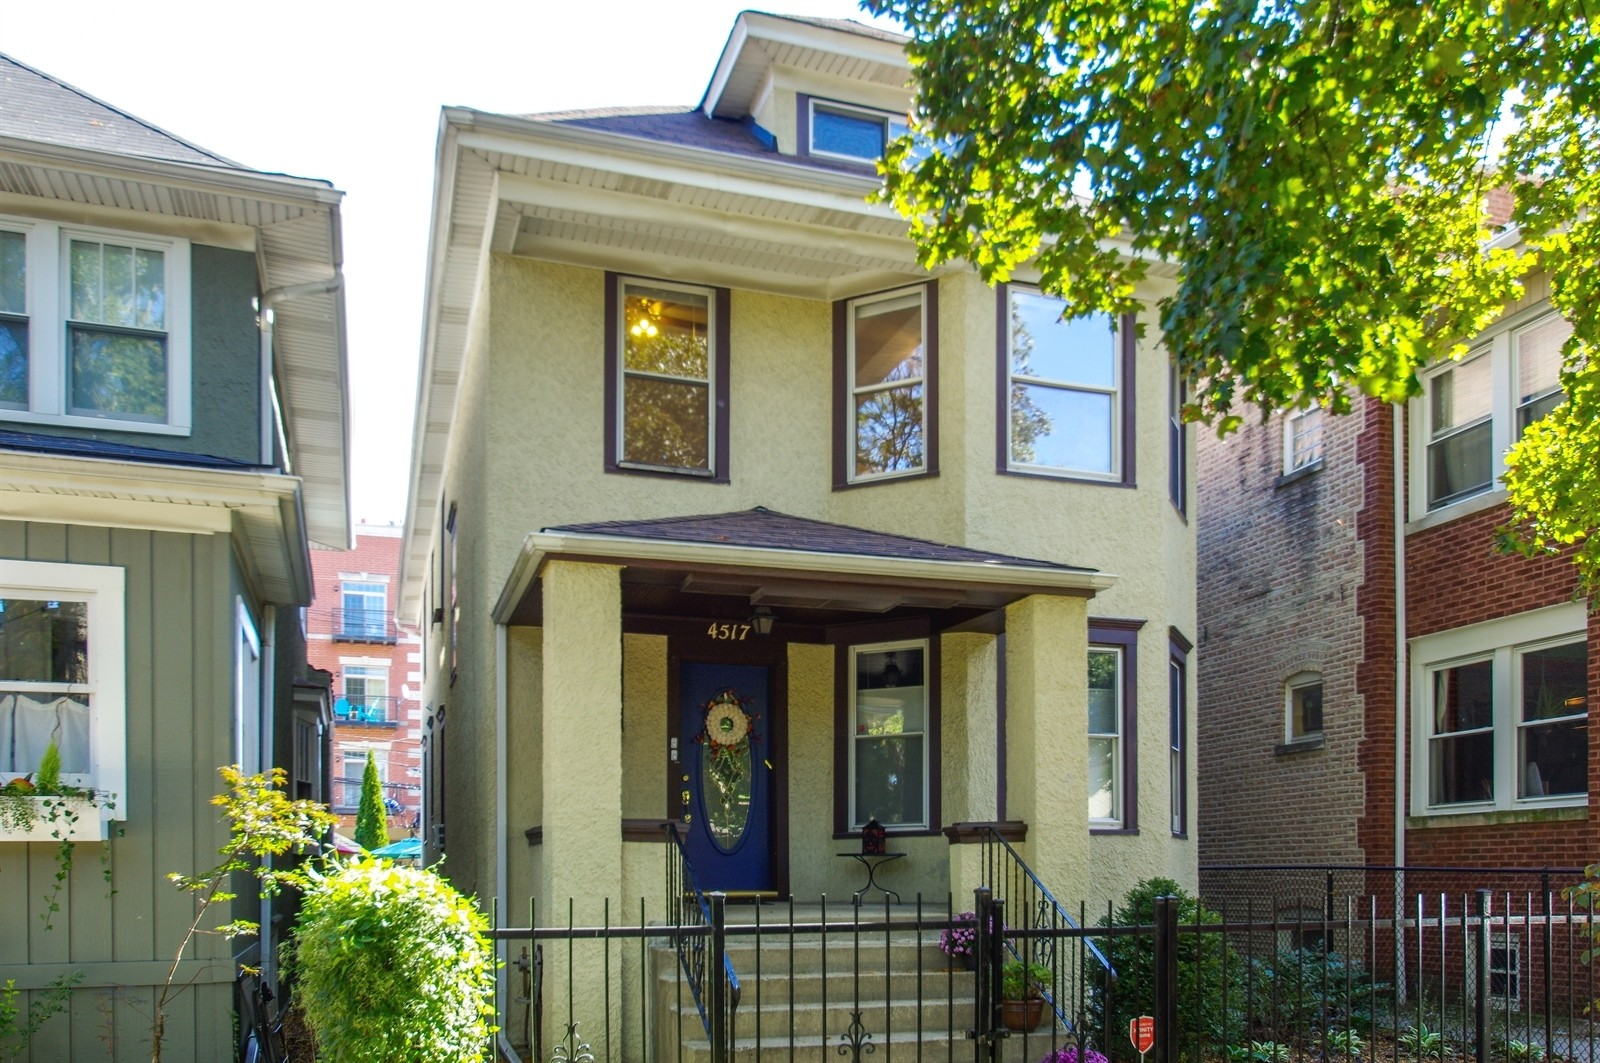 Sold! Two-flat Albany Park $515K